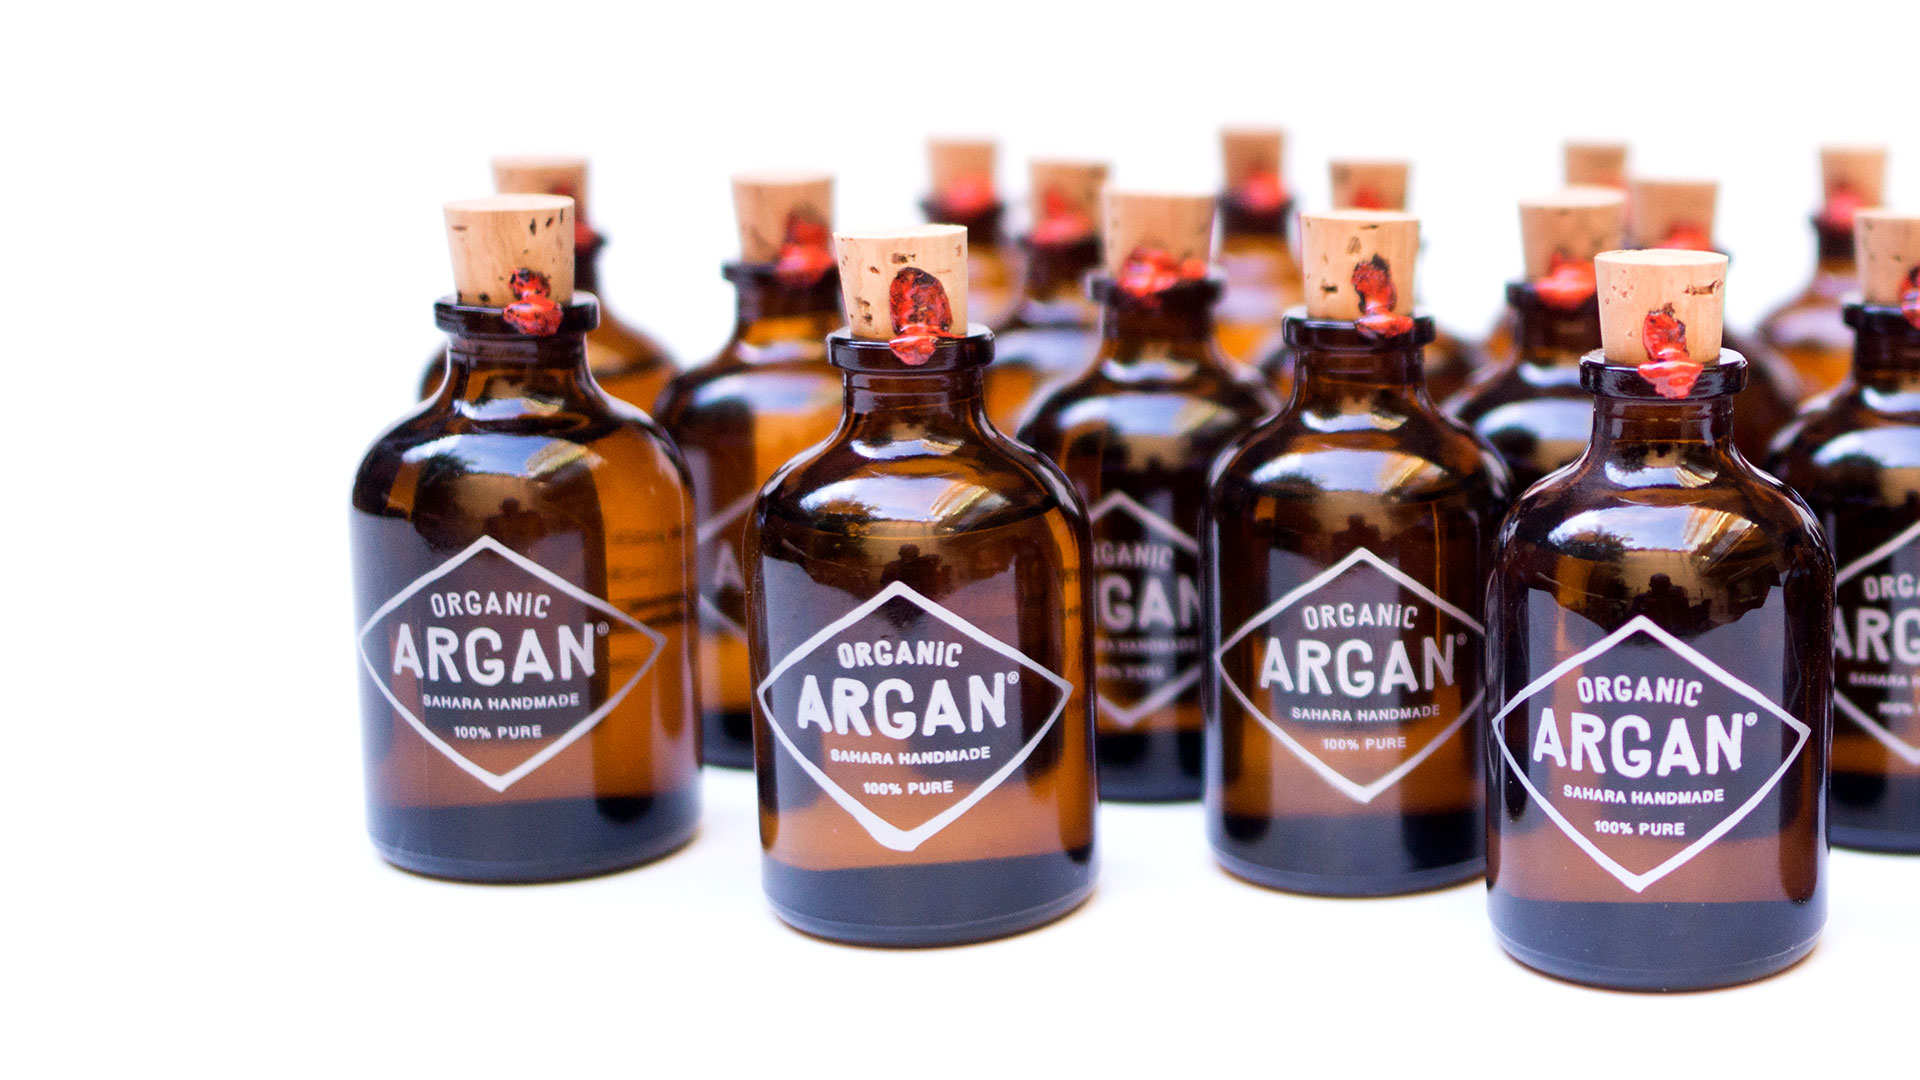 argan-bottles